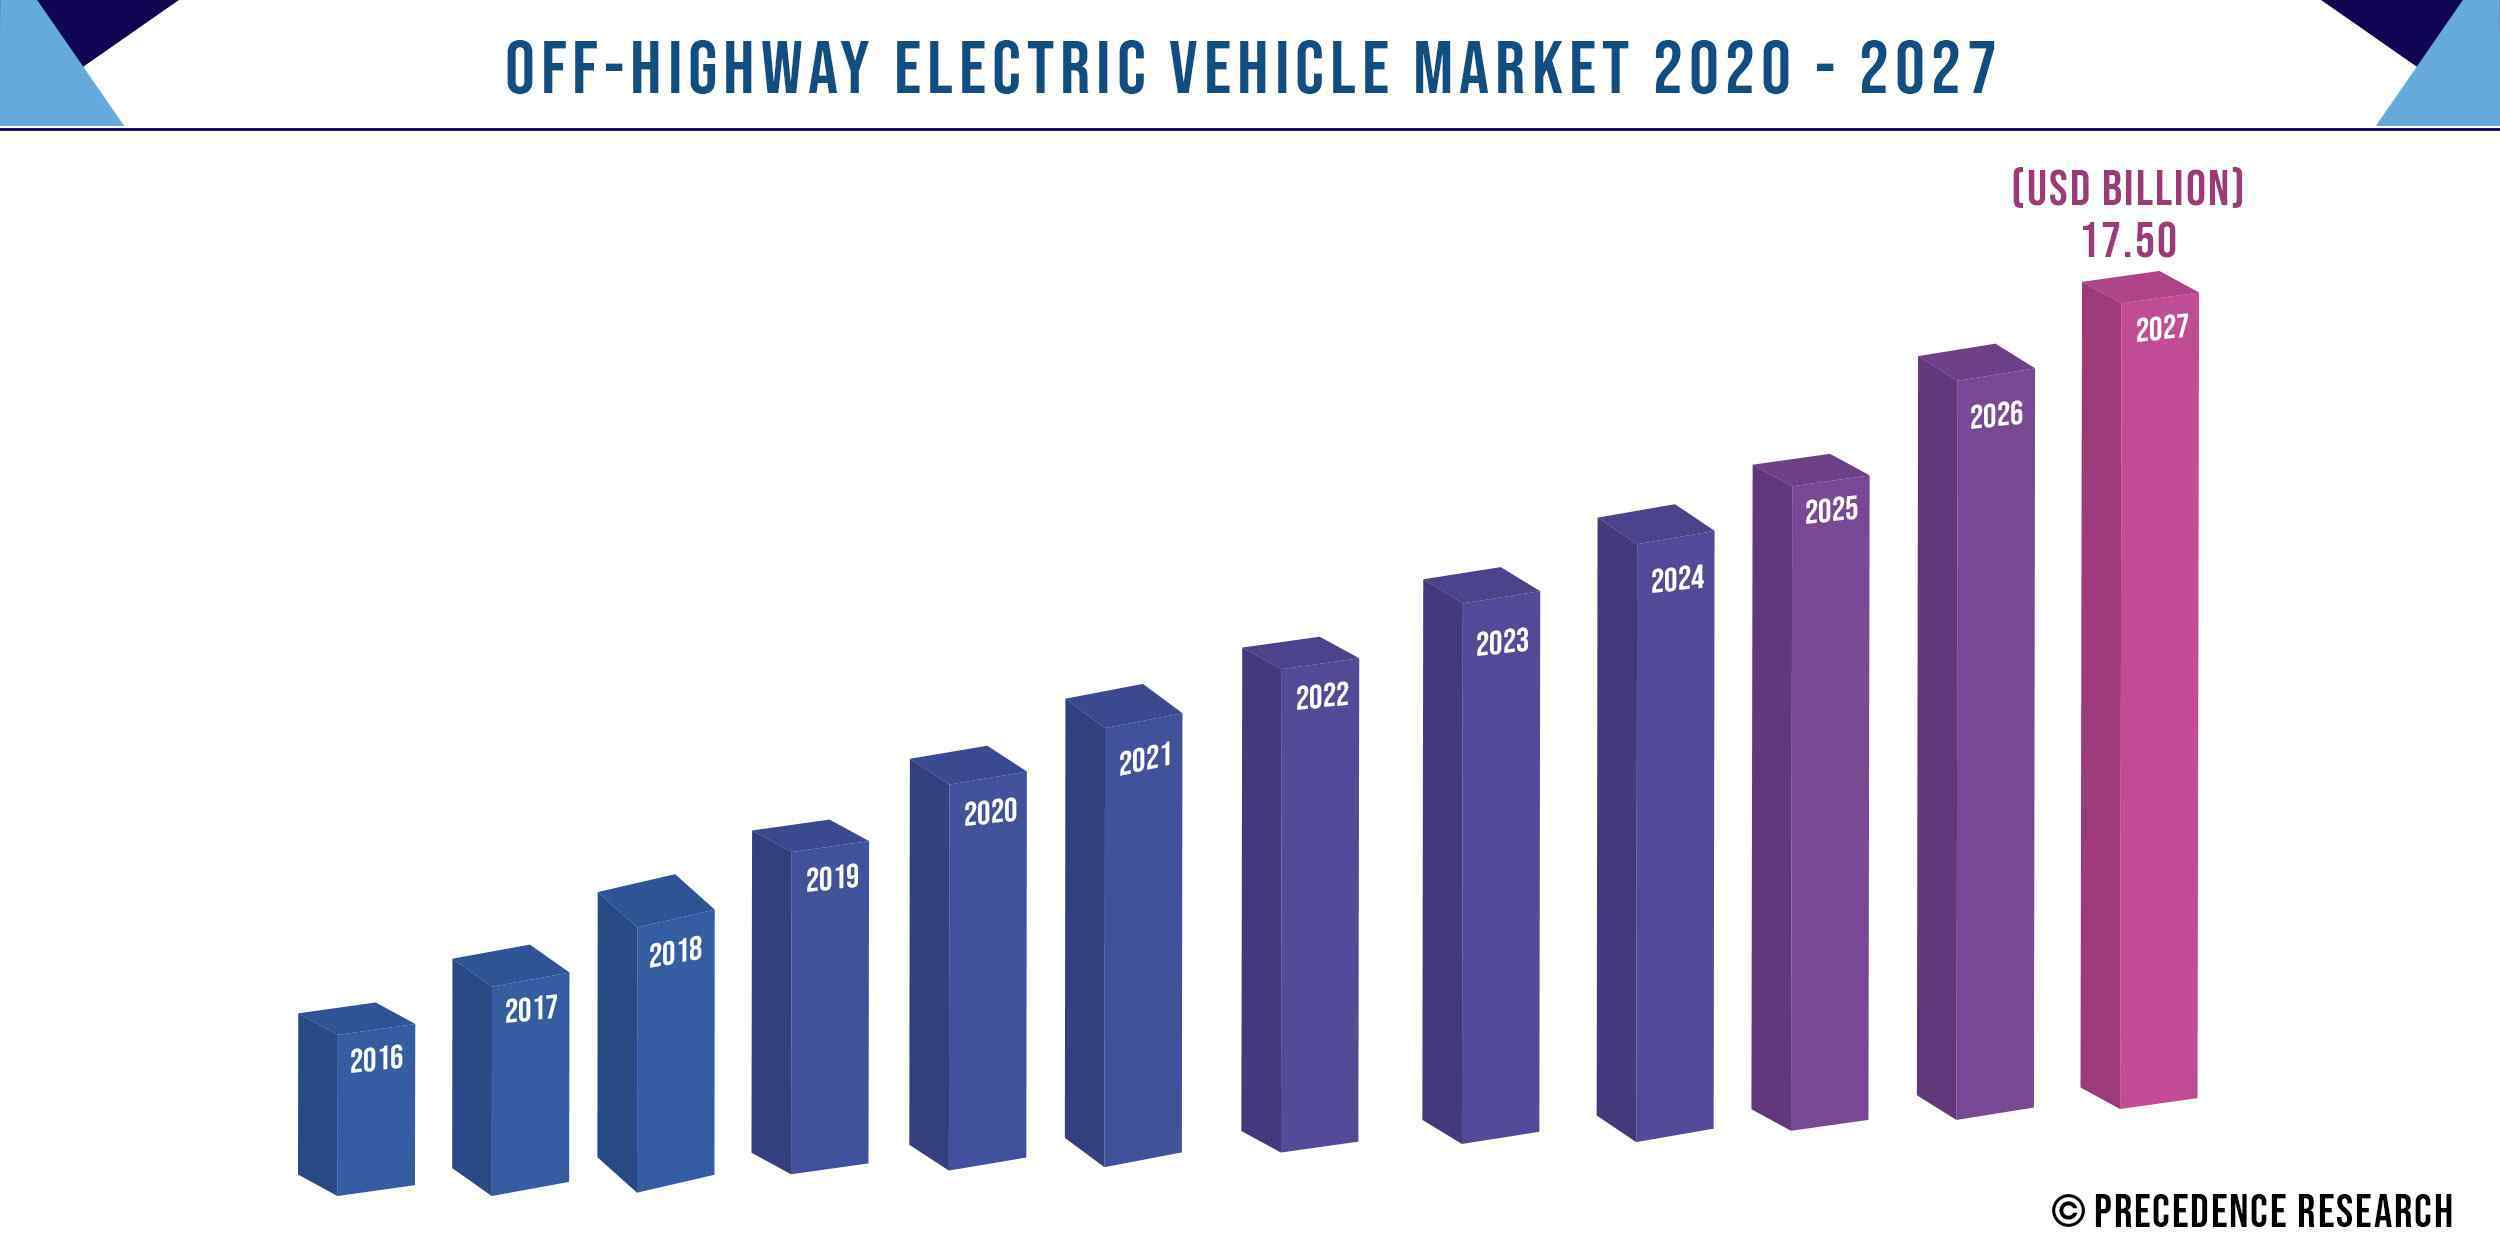 Off Highway Electric Vehicle Market Size 2016-2027